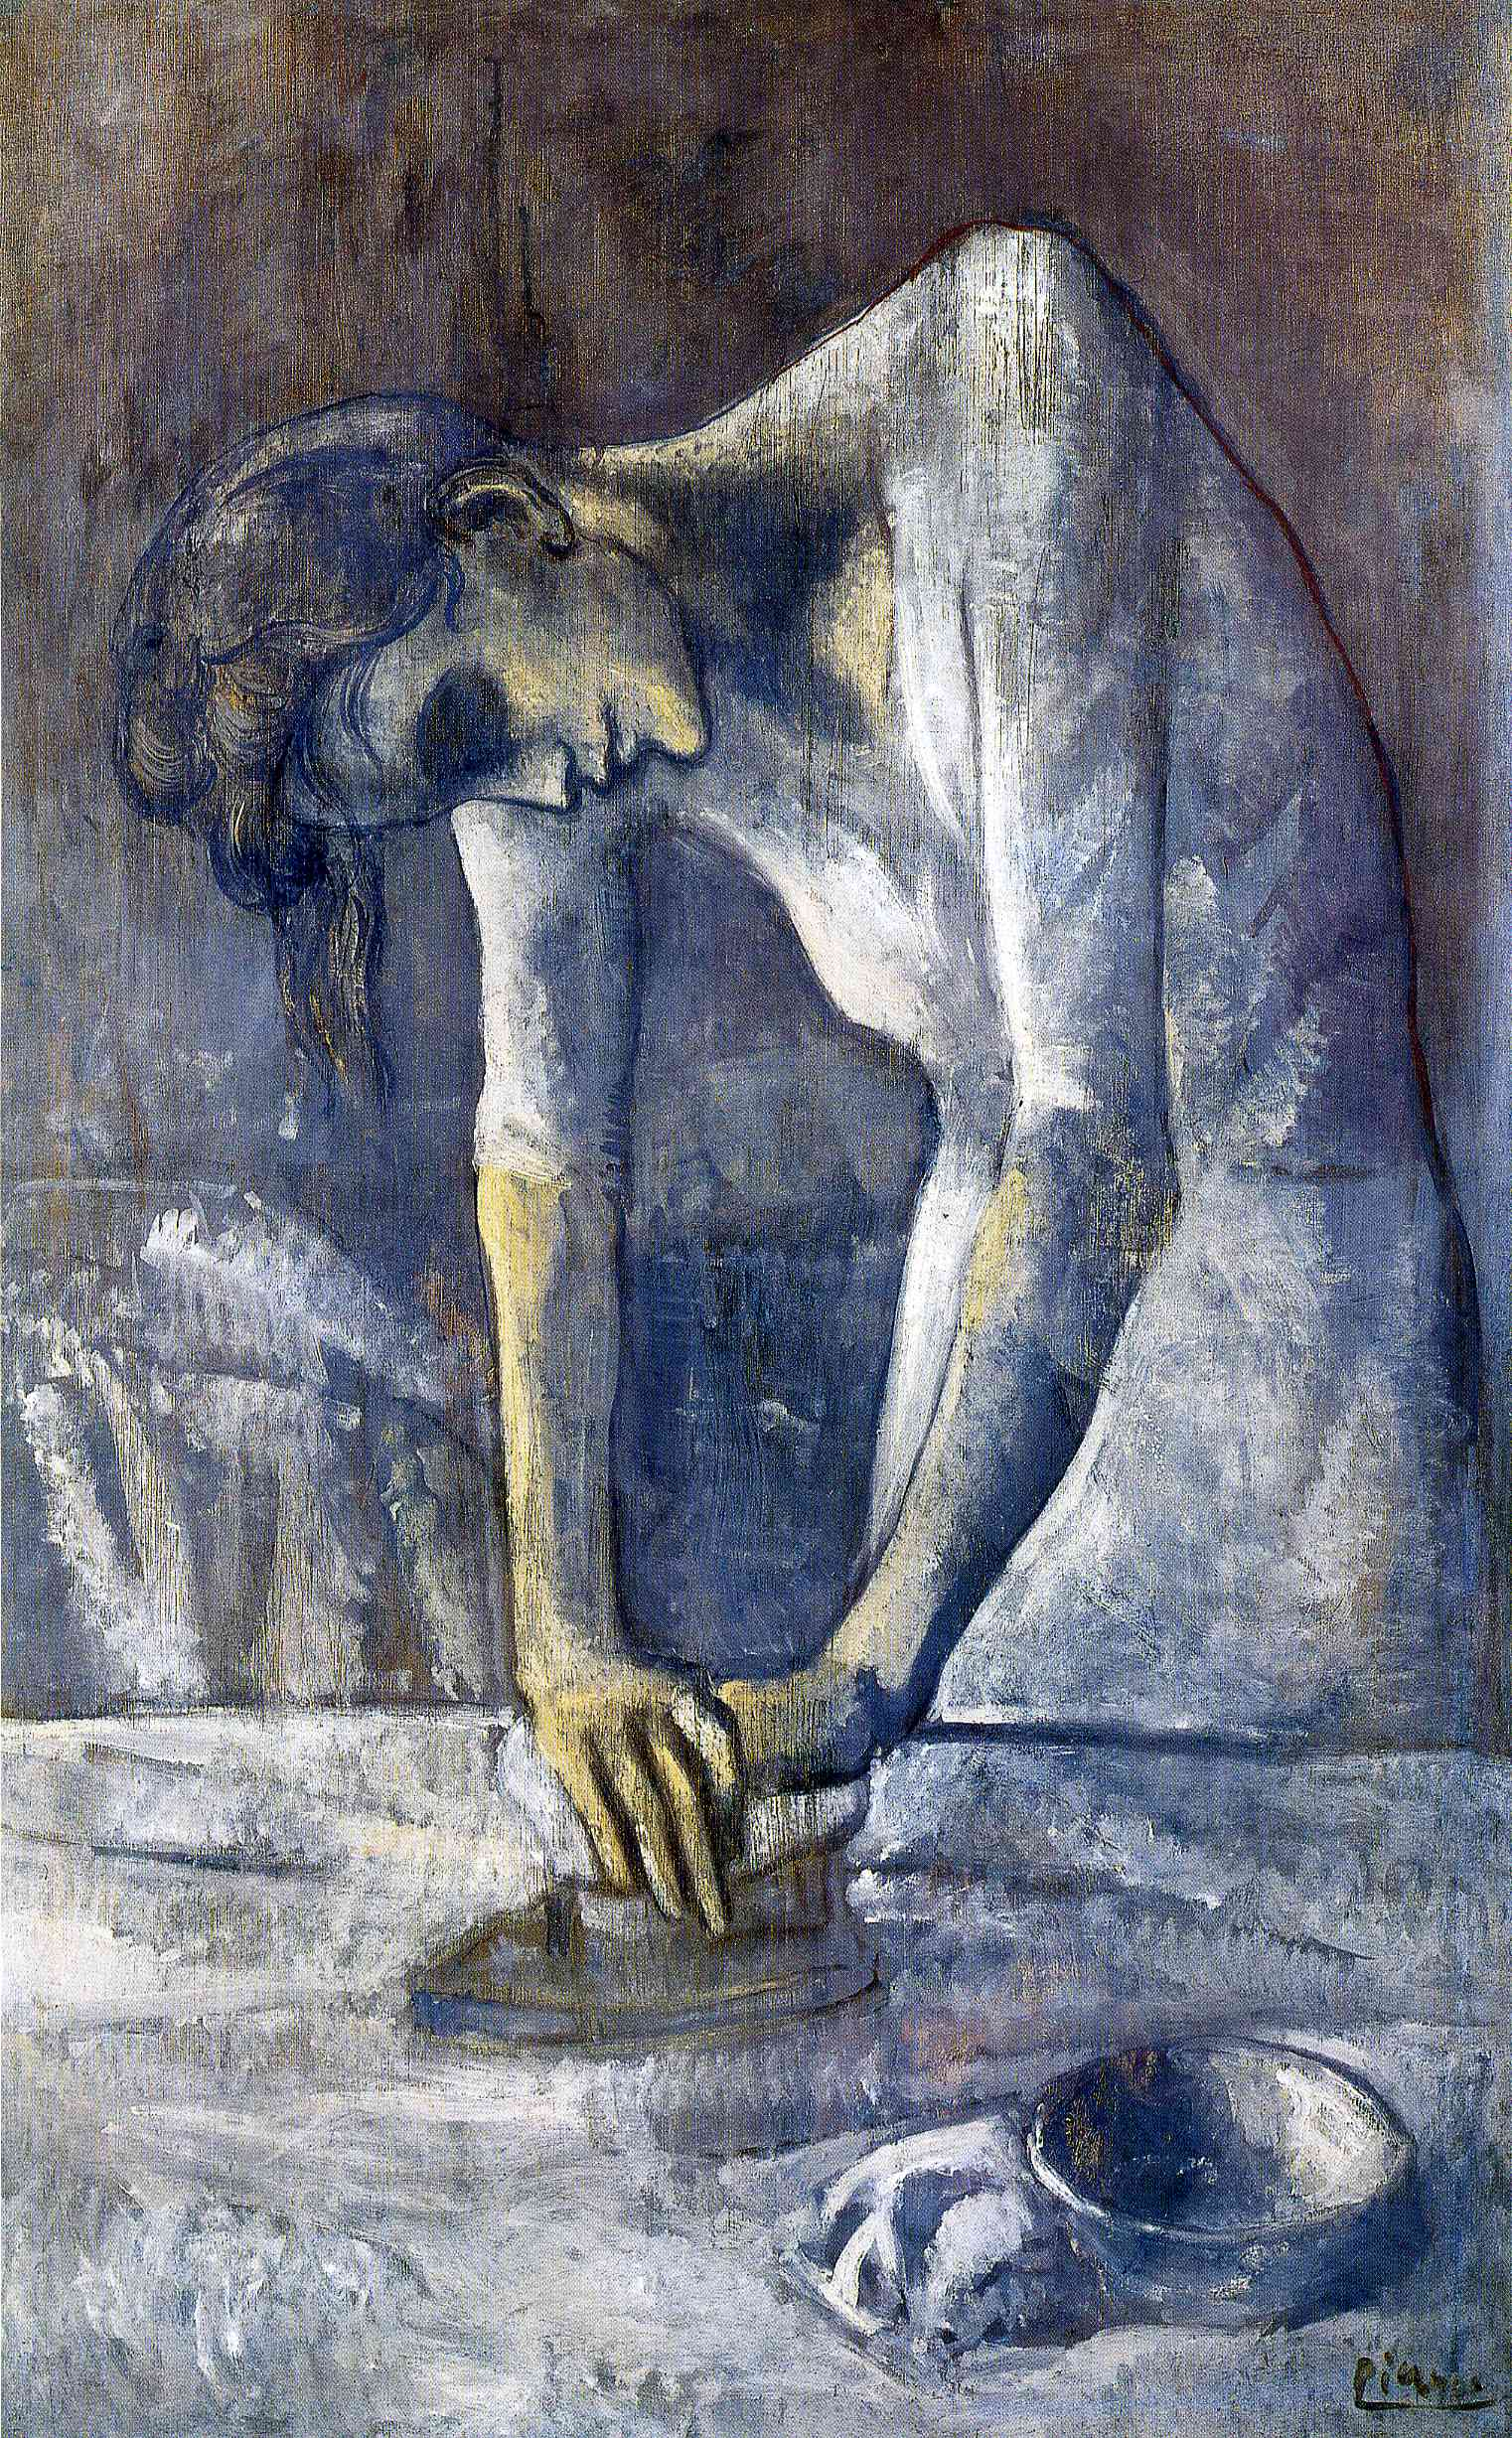 Pablo Picasso S Style In Painting